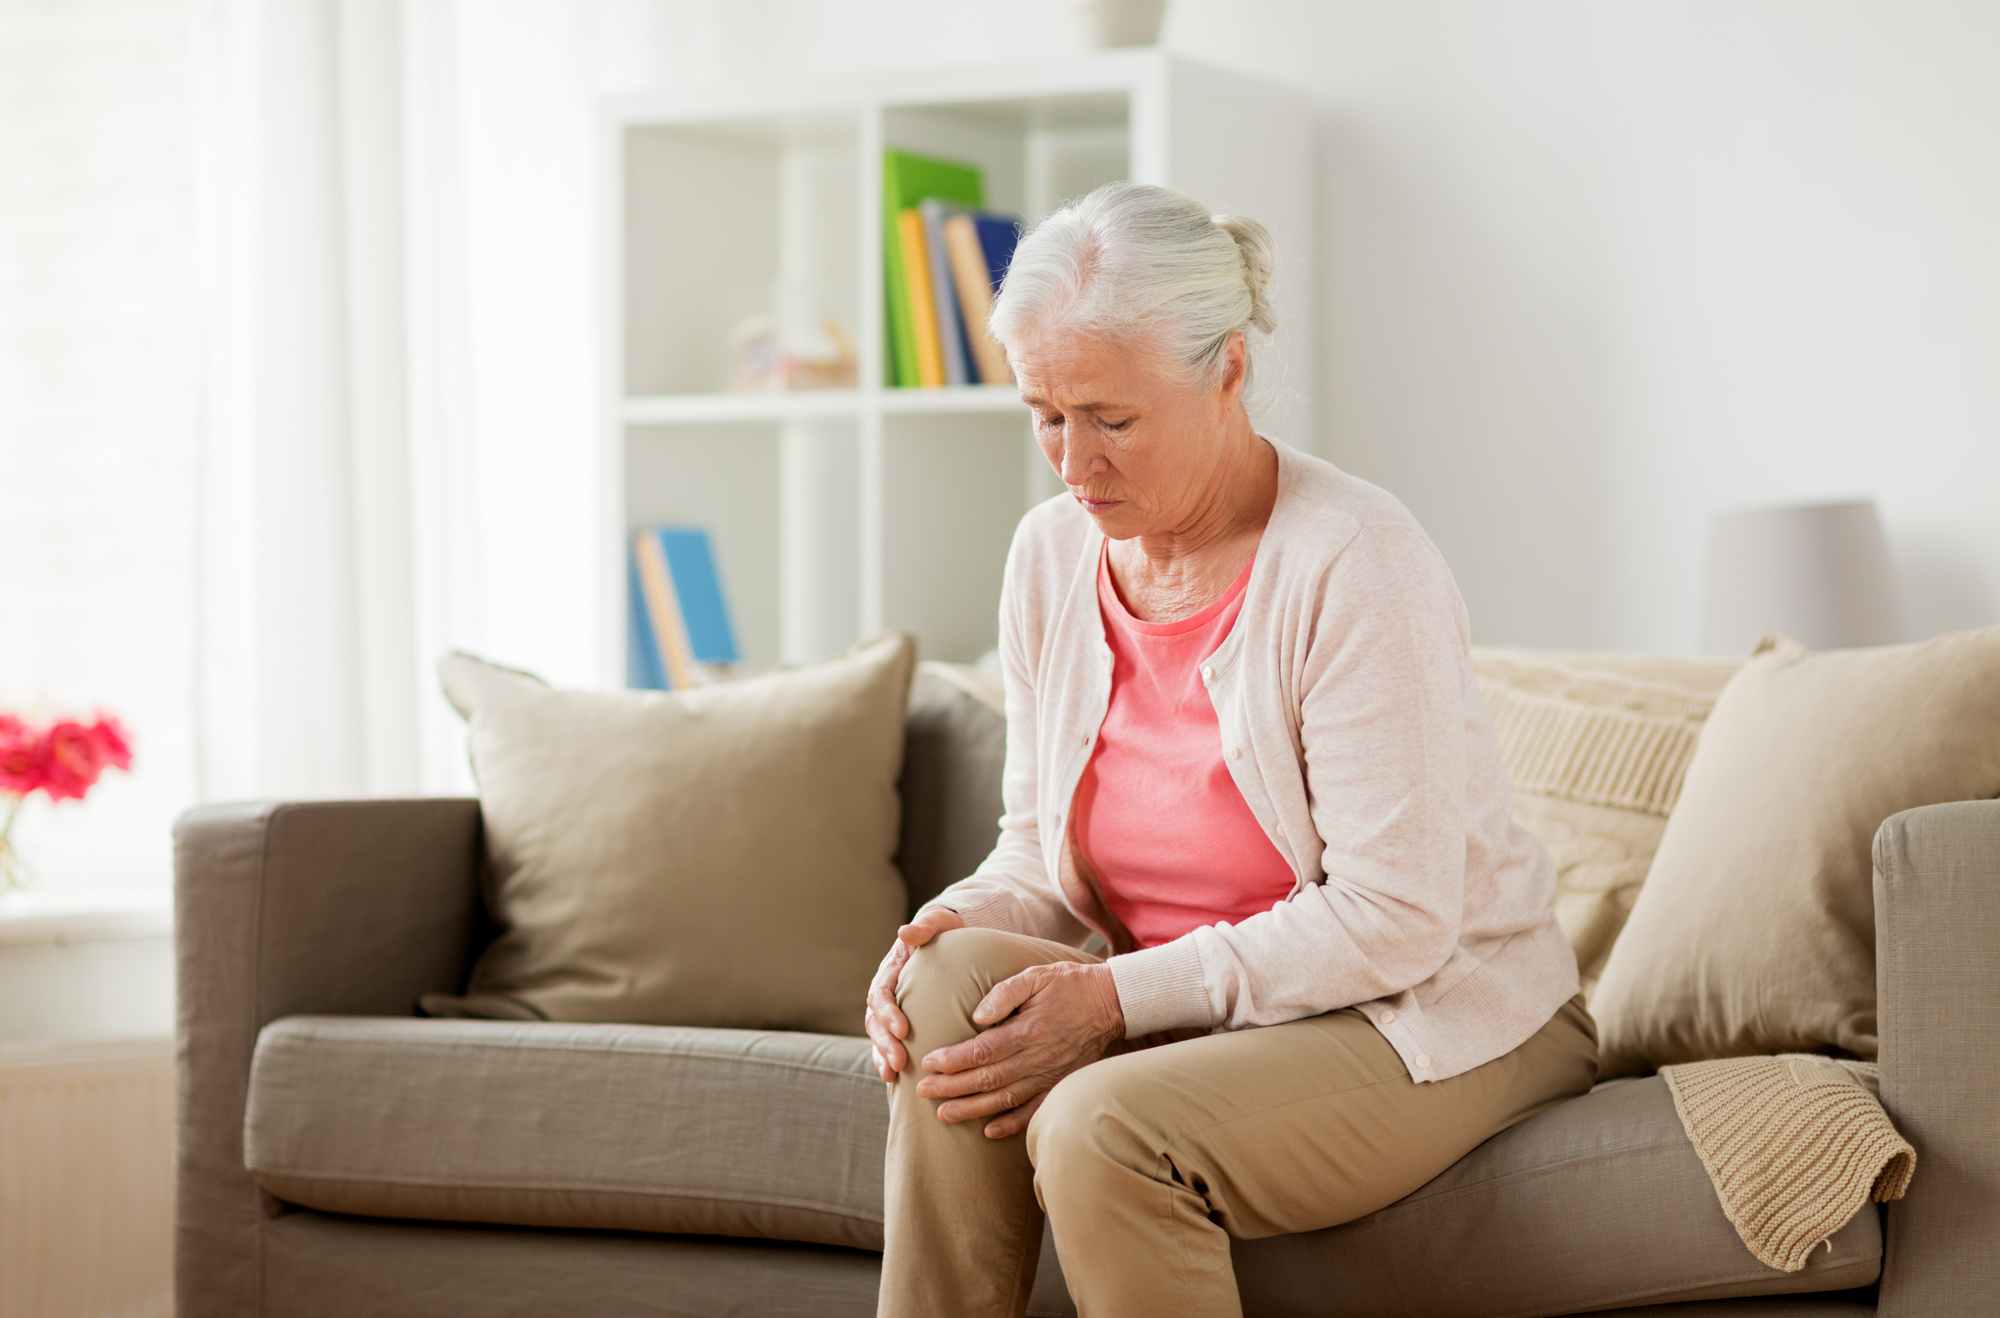 senior woman suffering from pain in leg at home